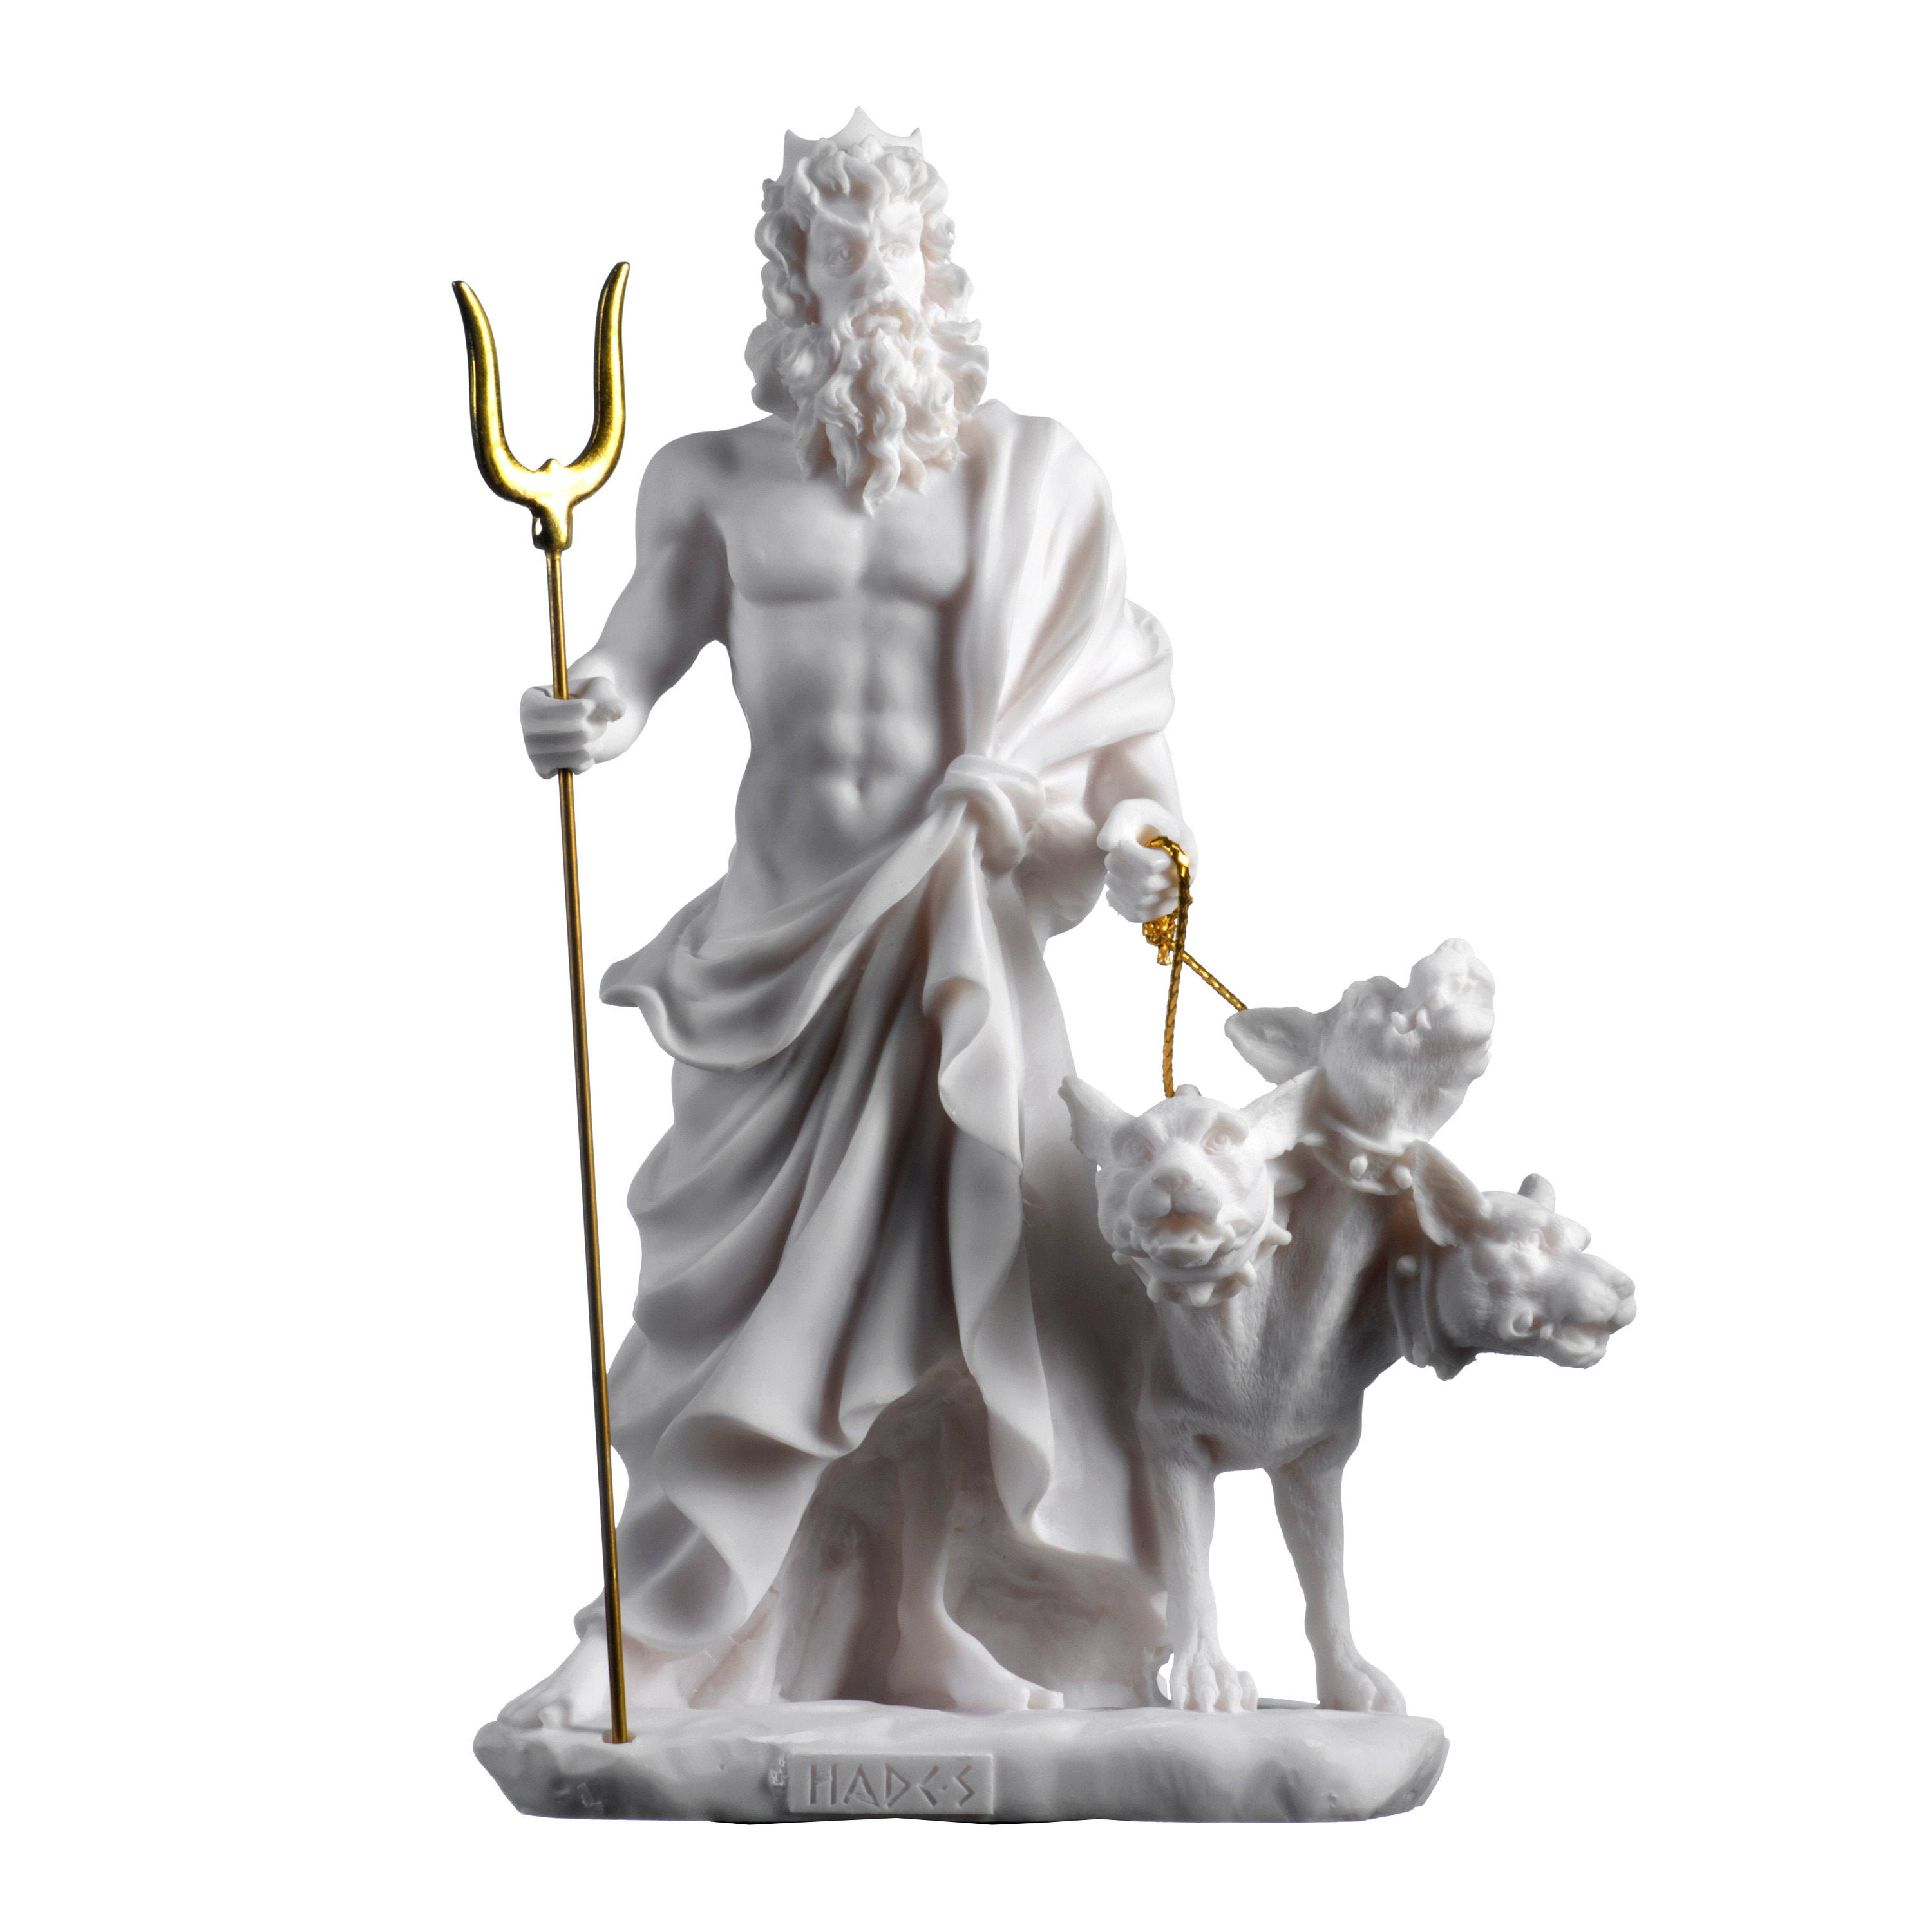 Pluto Hades Lord of the Underworld Greek Statue Dead Figurine Museum 9.4""